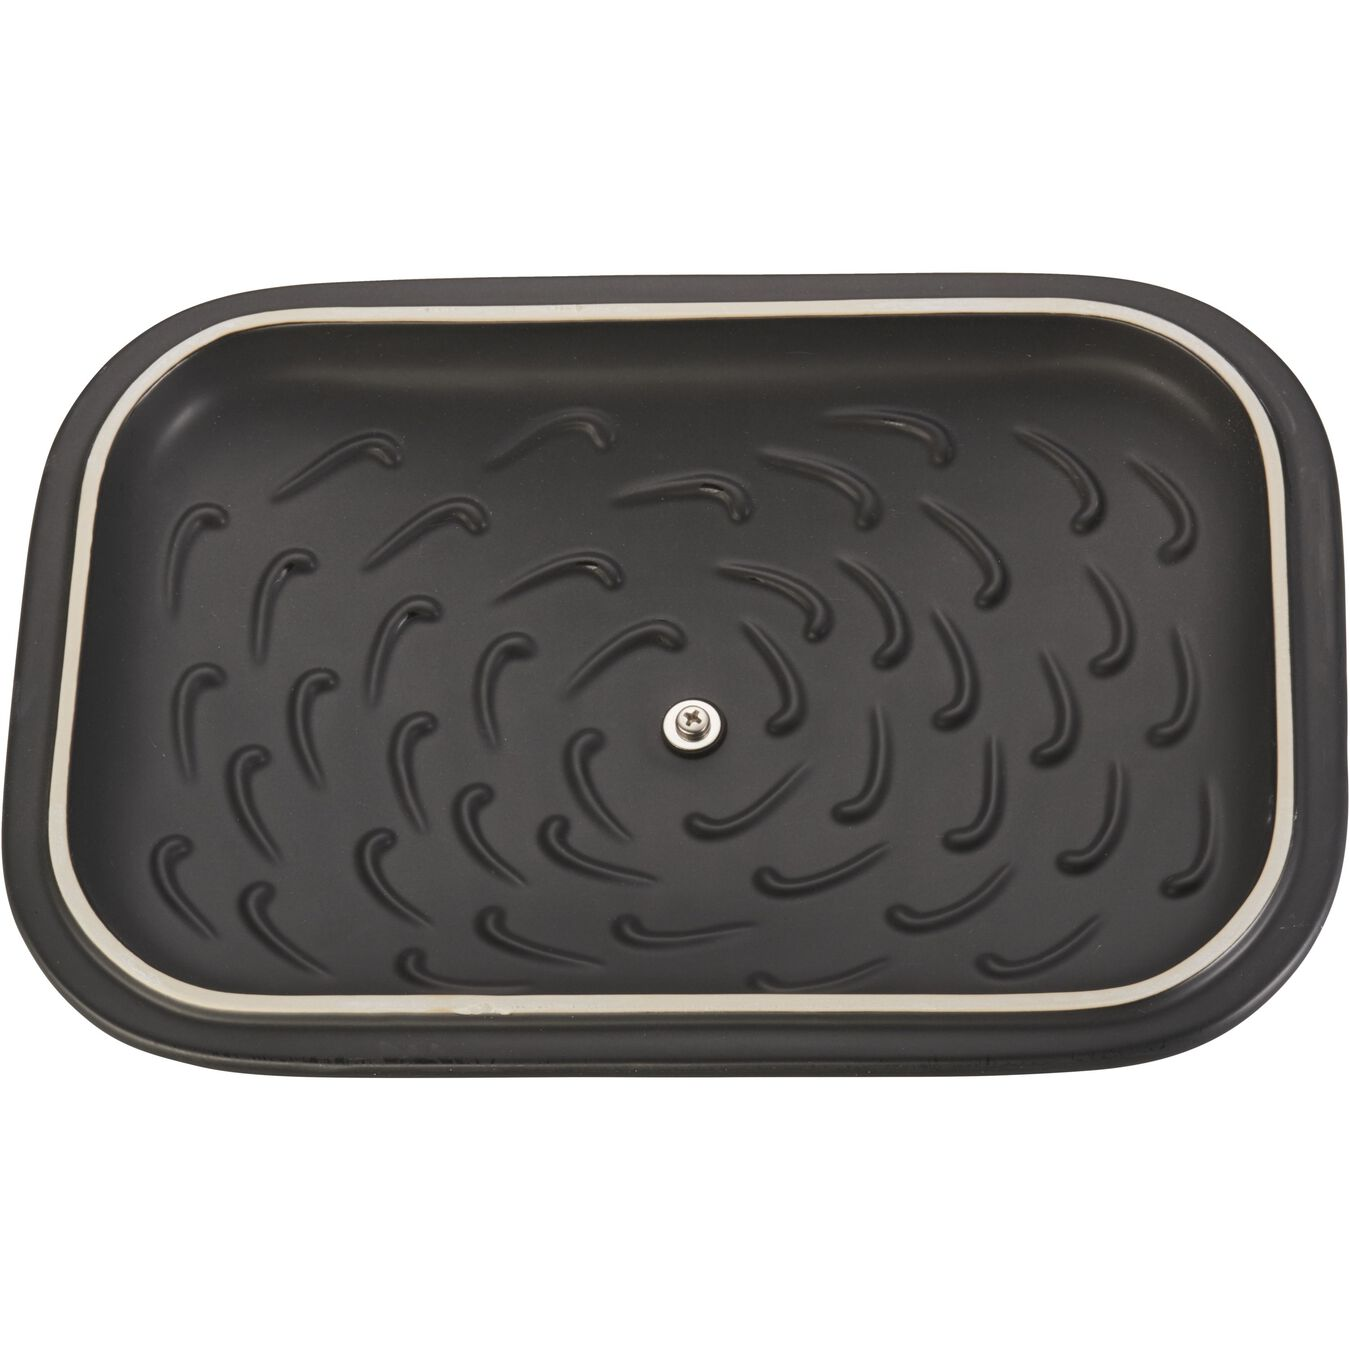 Ceramic rectangular Special shape bakeware, Black,,large 5